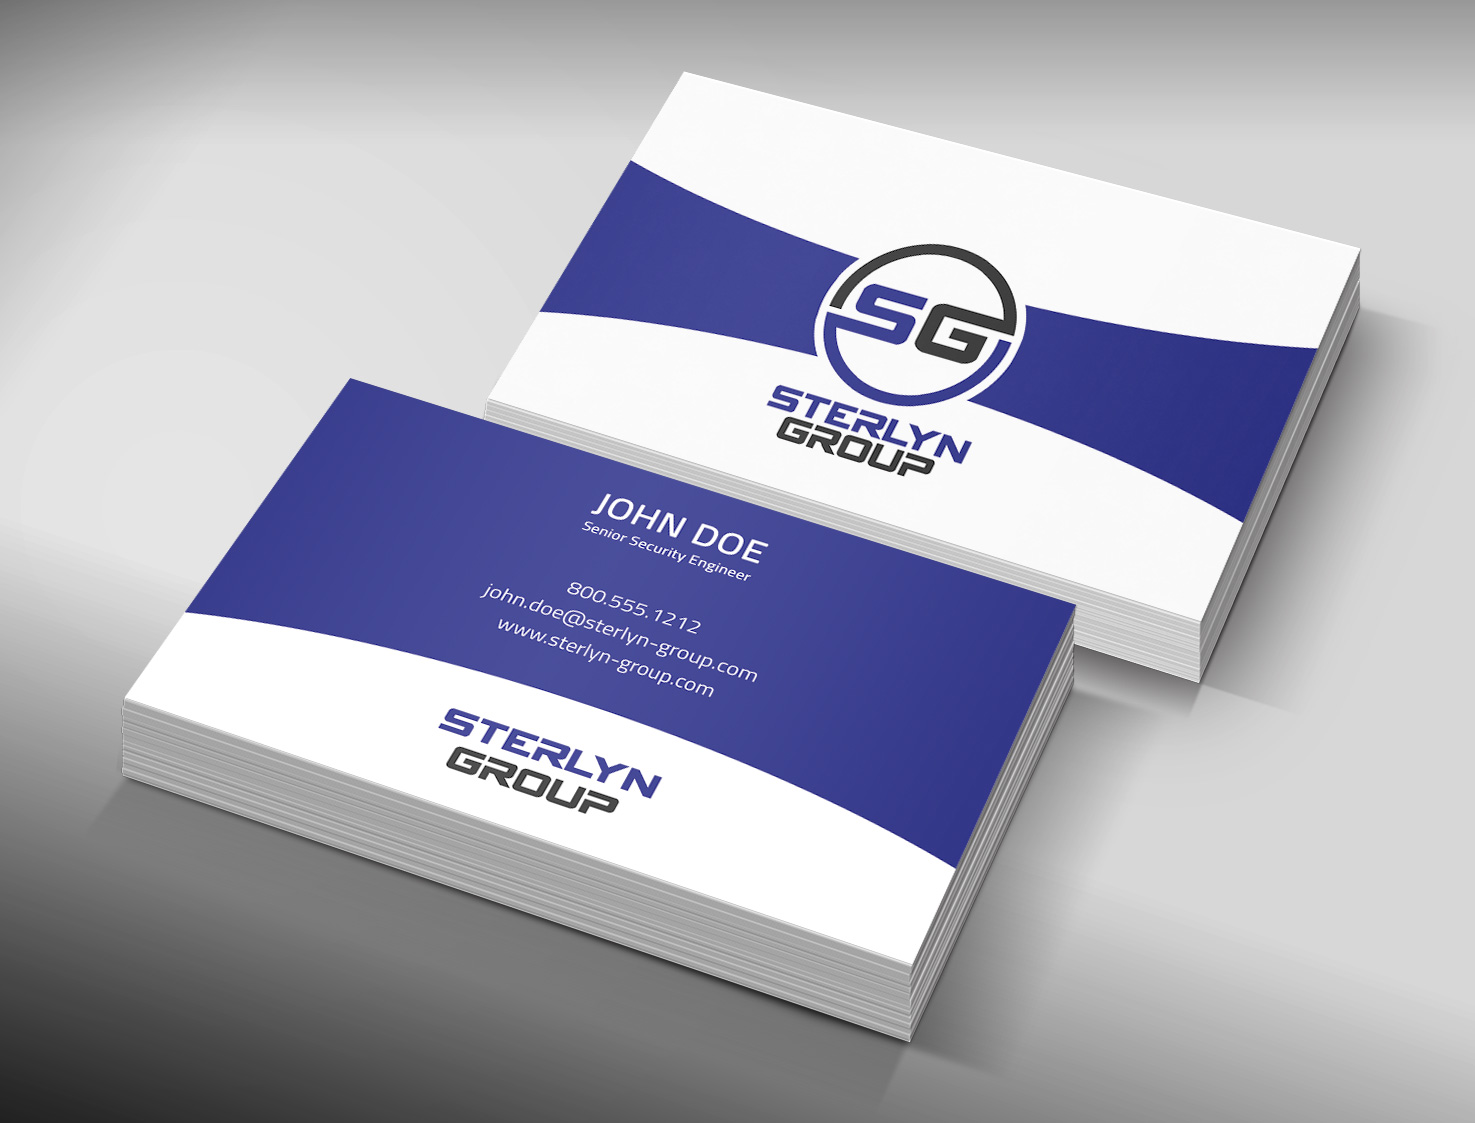 Professional conservative business business card design for a business card design by creation lanka for this project design 4745890 colourmoves Choice Image